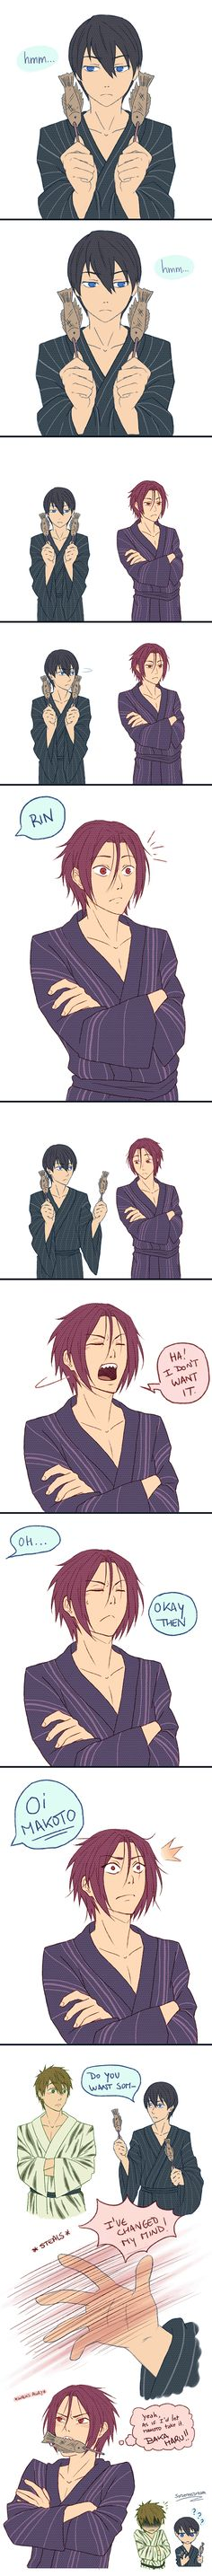 Free! ~~ When a fish-on-a-stick stands for something else entirely... ! :: fanart by sorceress dream on deviantART